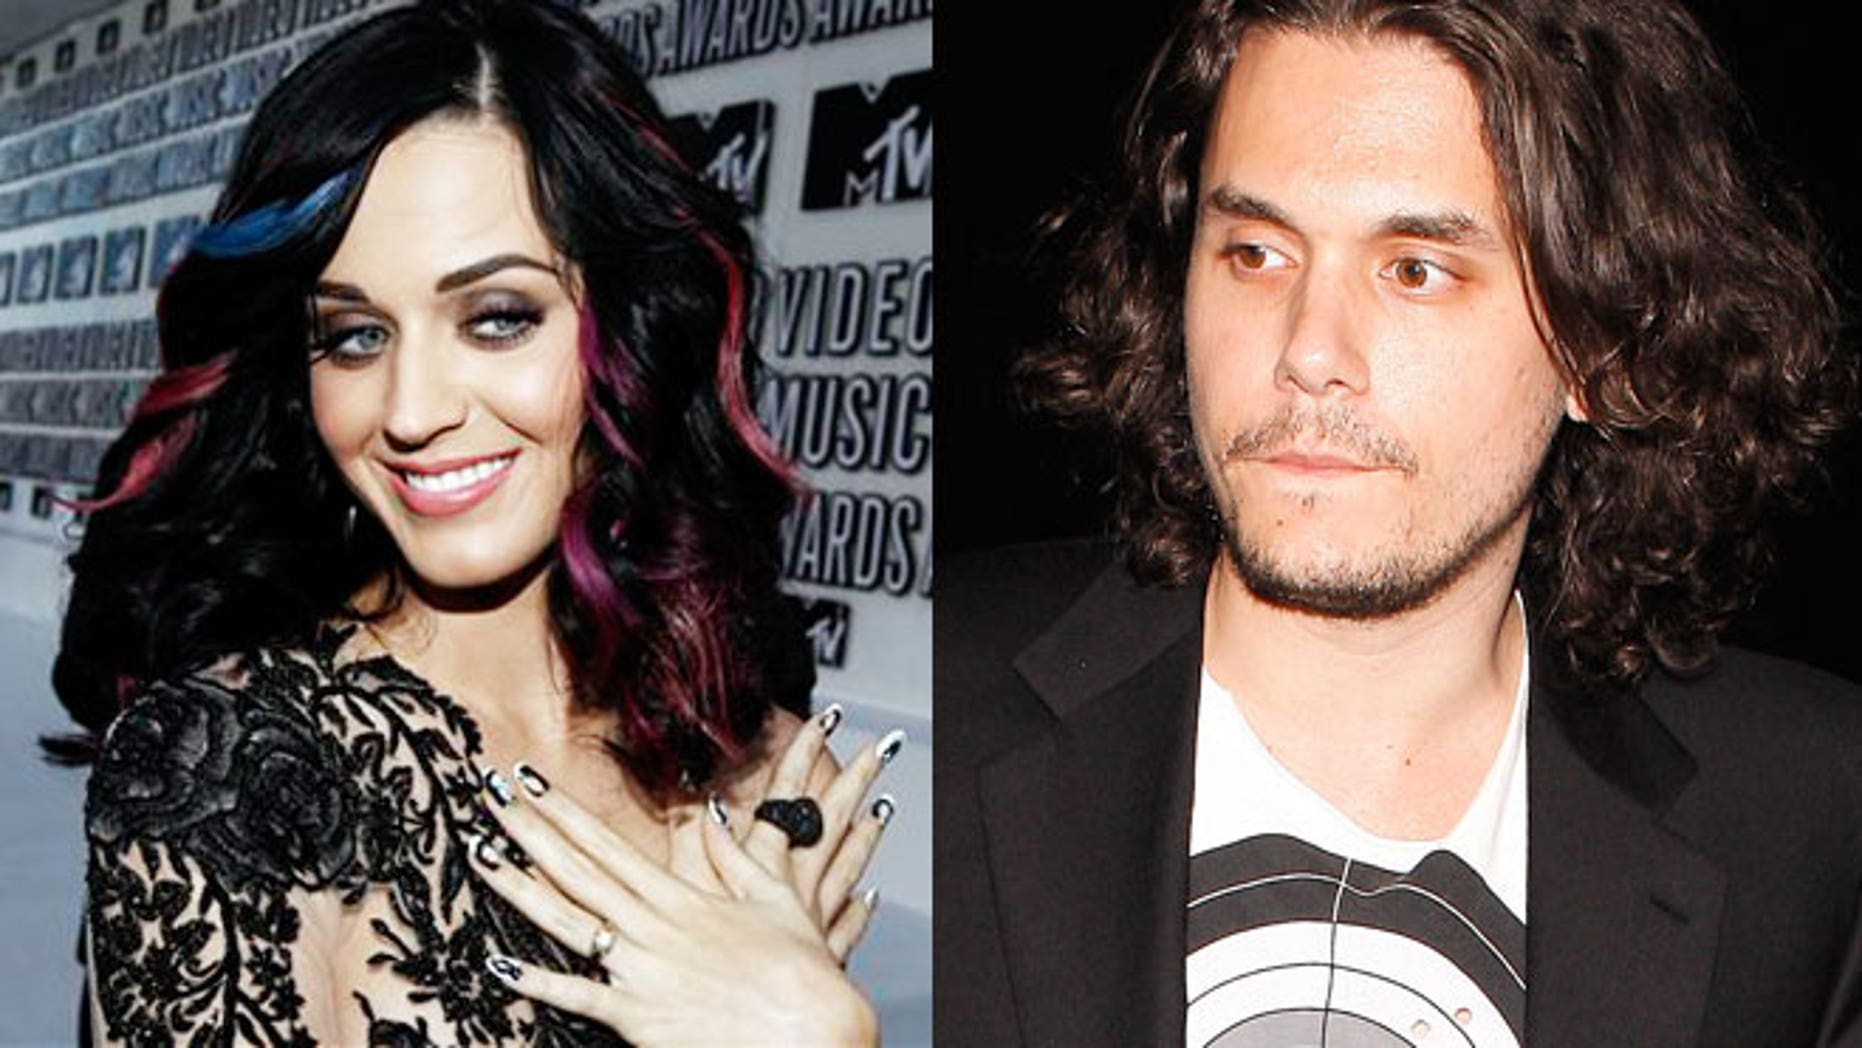 Are Katy Perry and John Mayer an item?